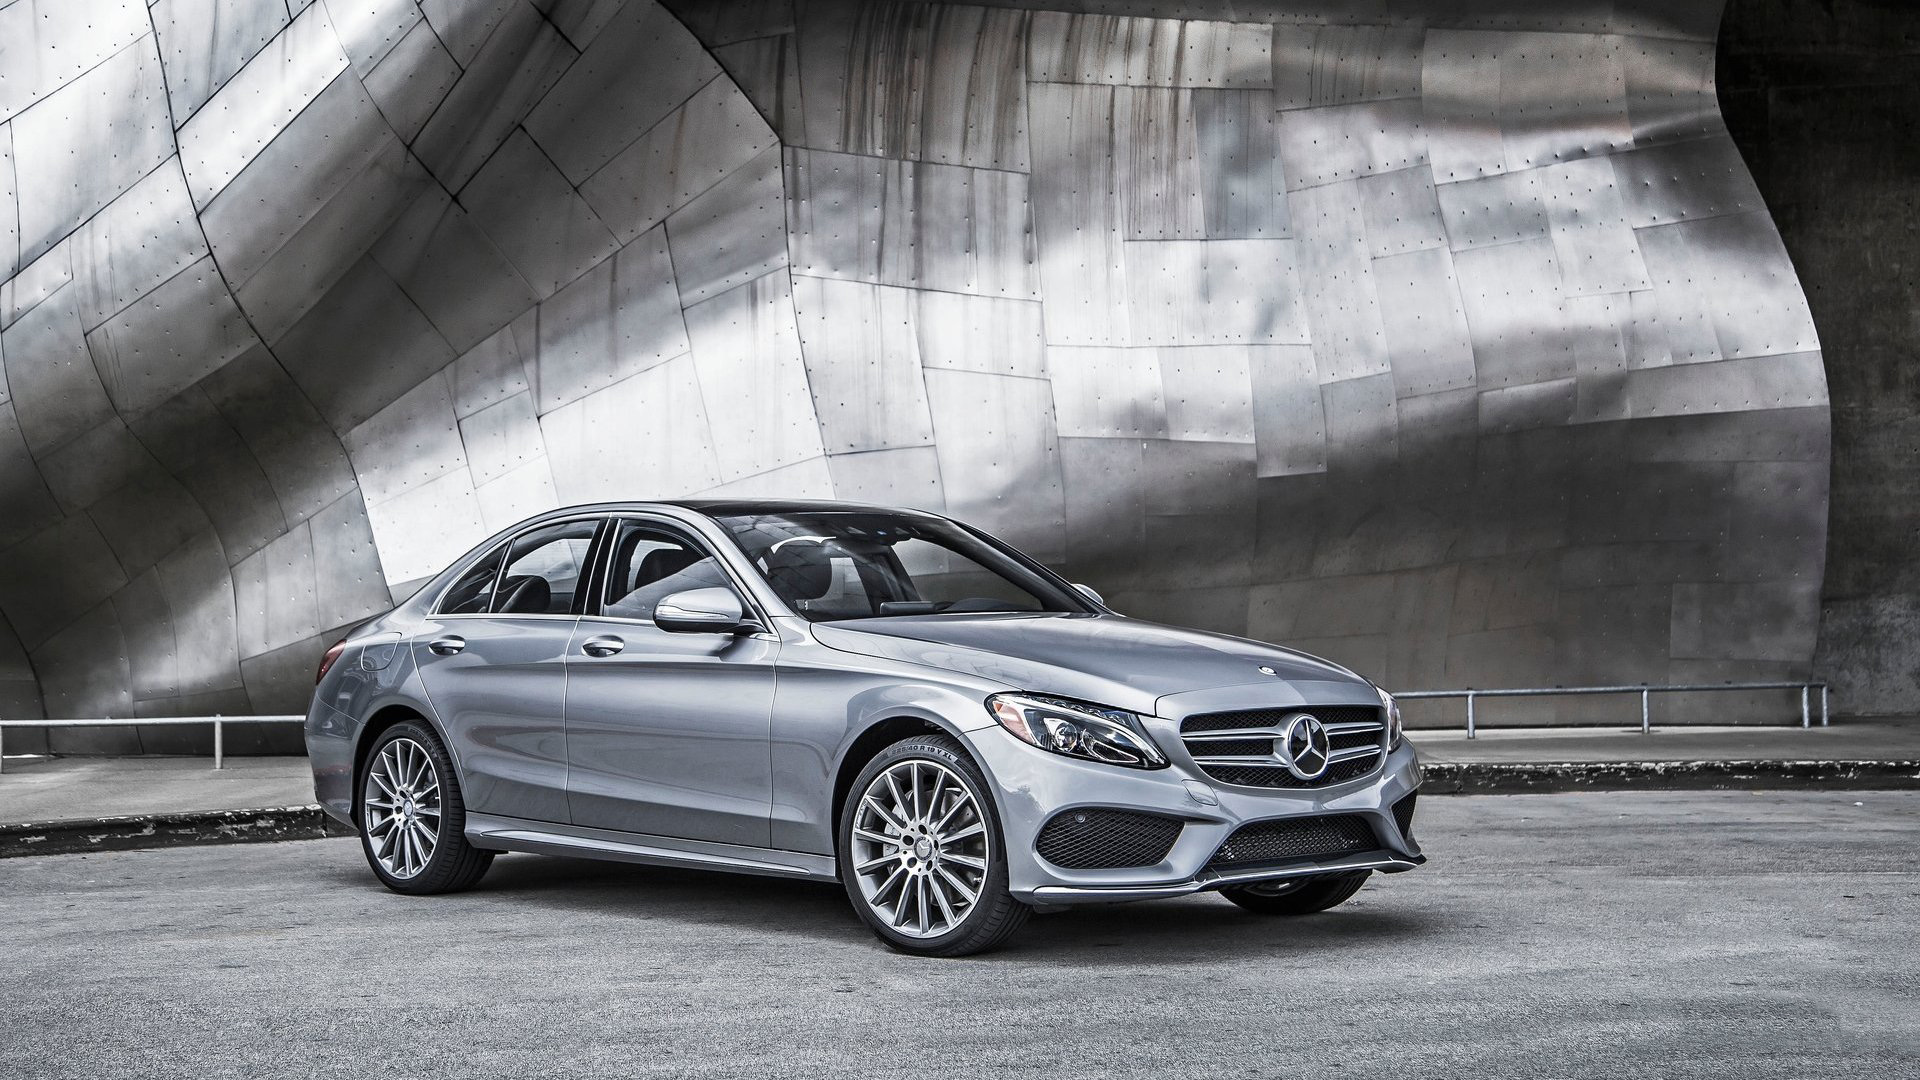 Mercedes benz c class 2015 wallpapers for 2015 mercedes benz c300 4matic